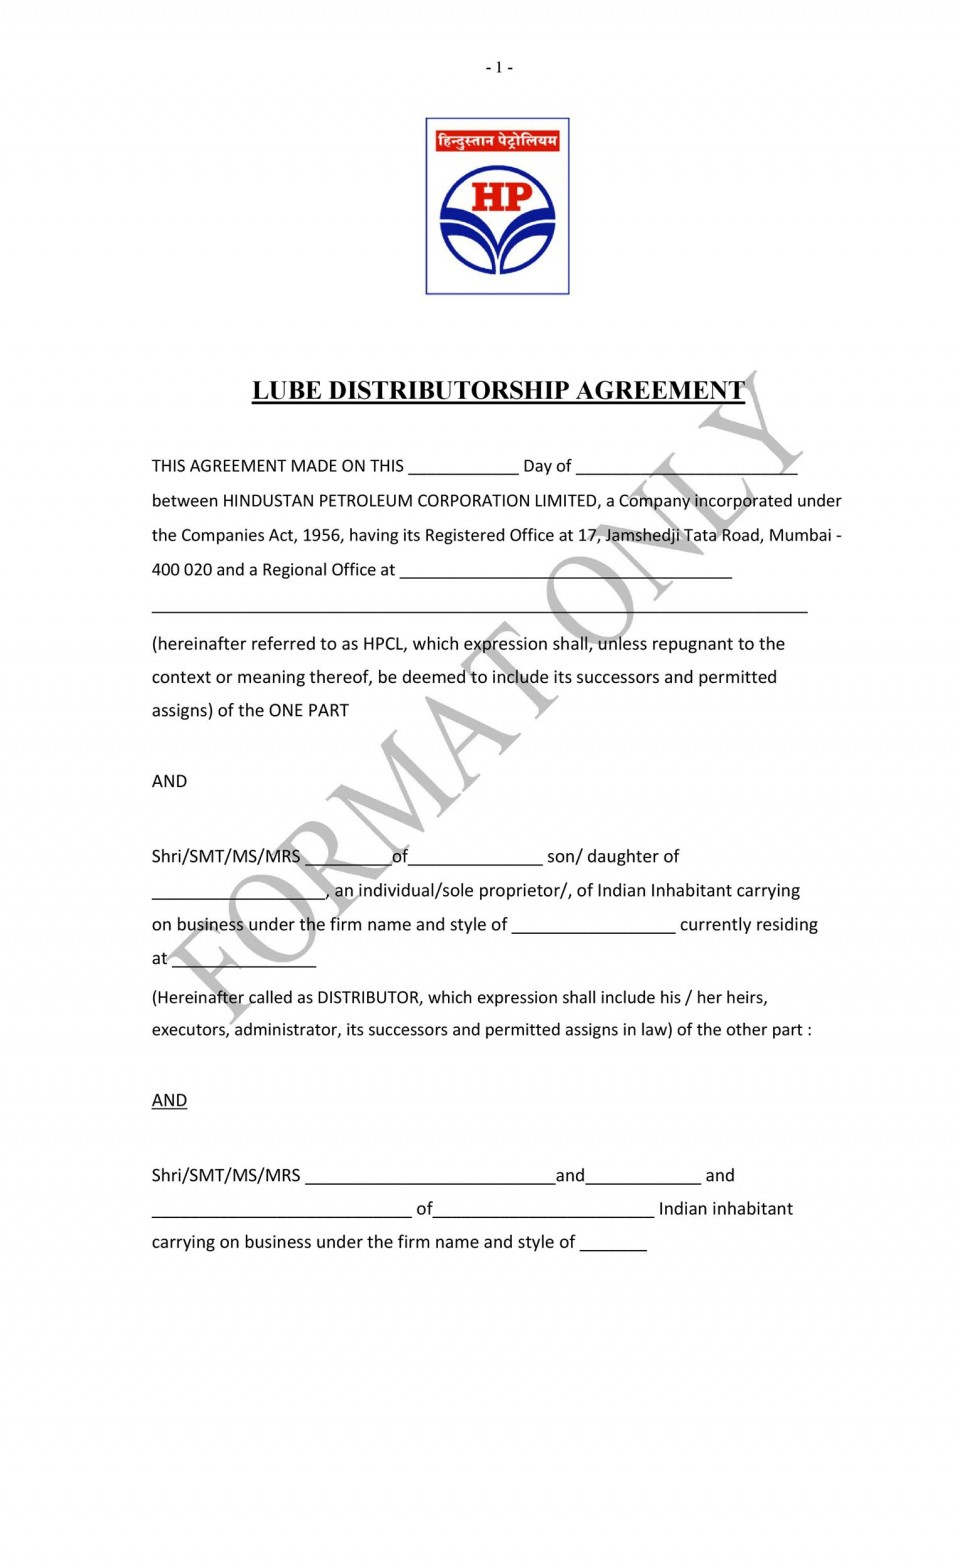 009 Awful Exclusive Distribution Agreement Template Free Download Inspiration 960